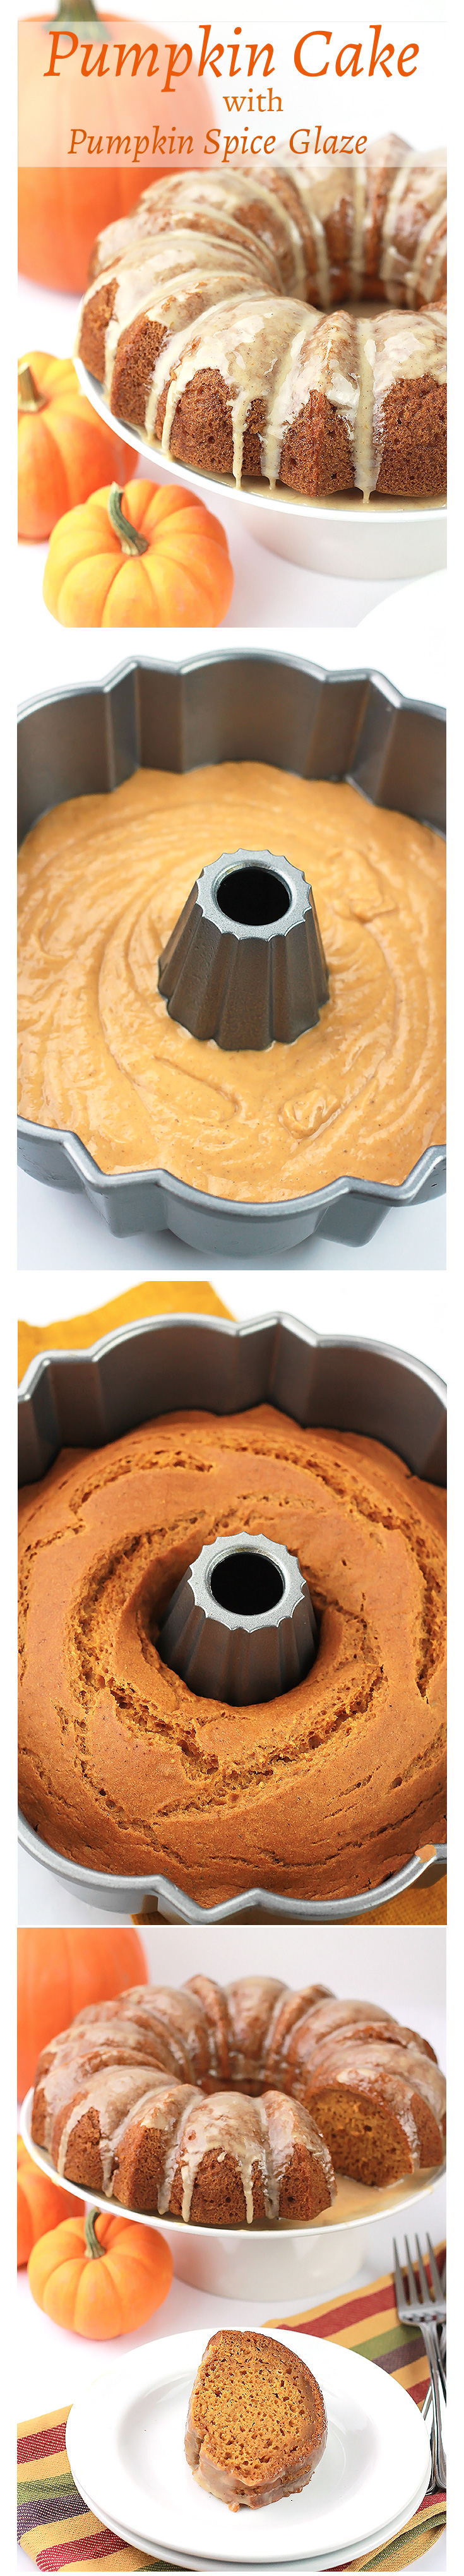 Pumpkin-Cake-Long-Pin